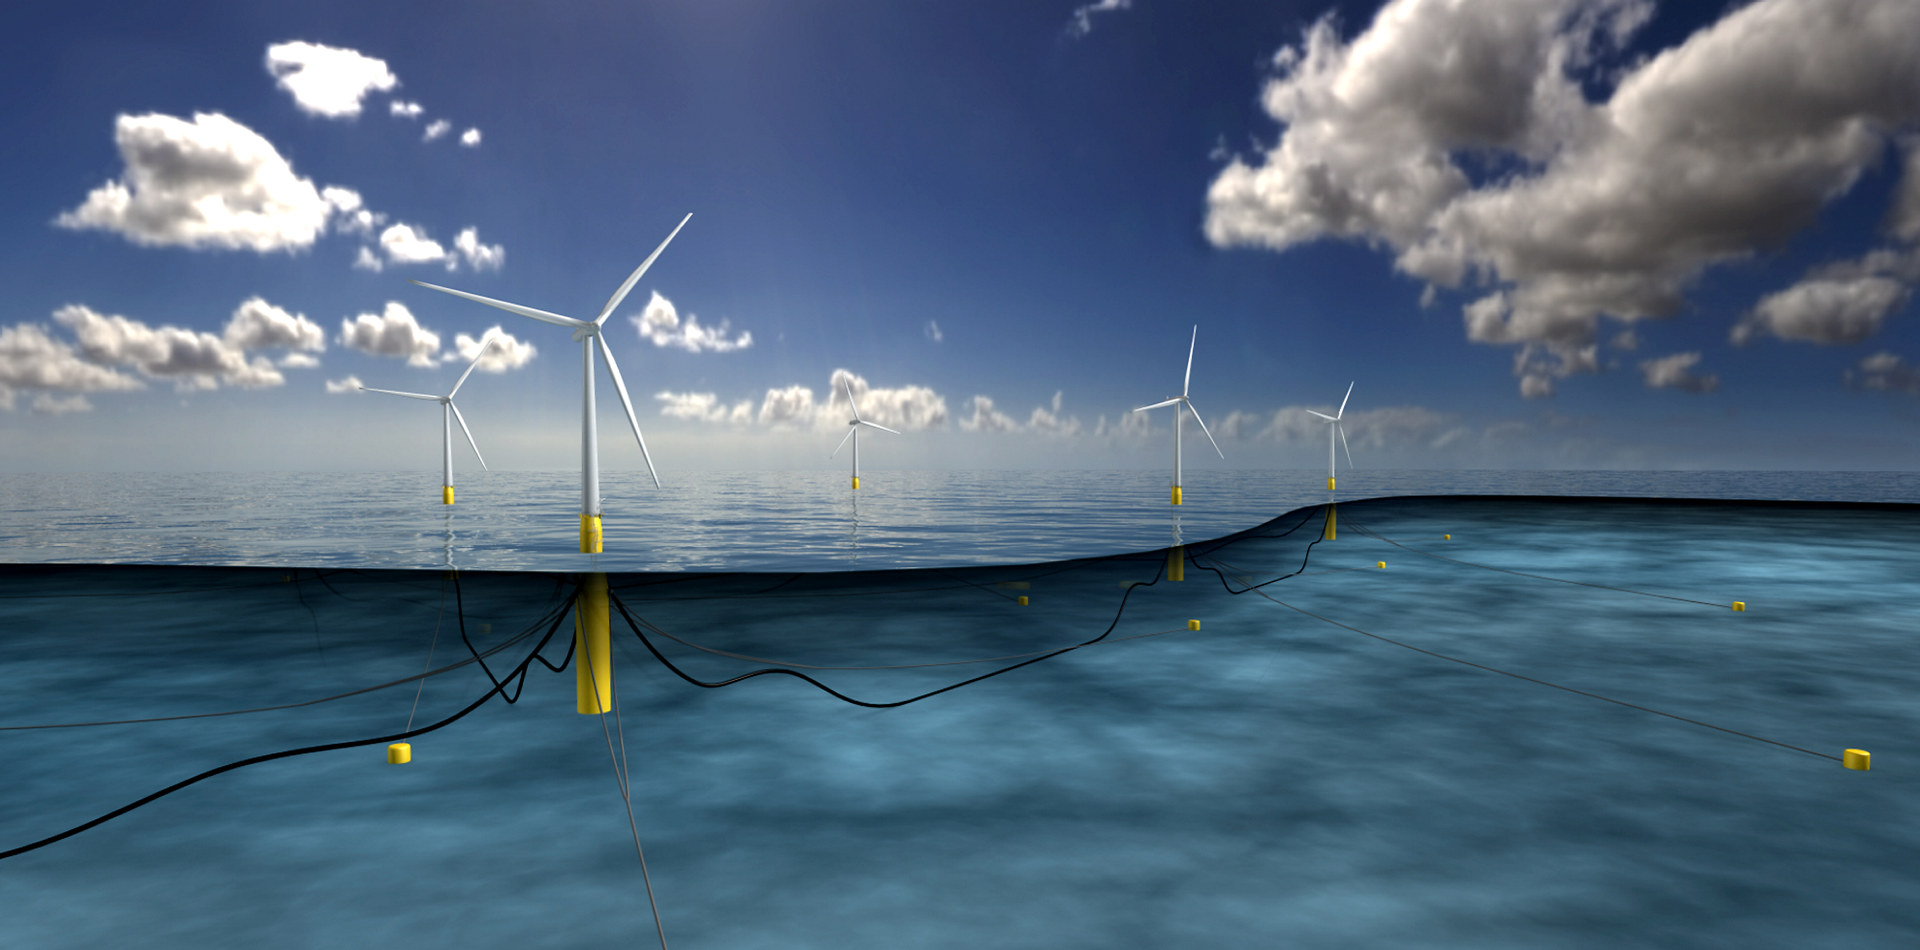 Hywind wind farm illustration